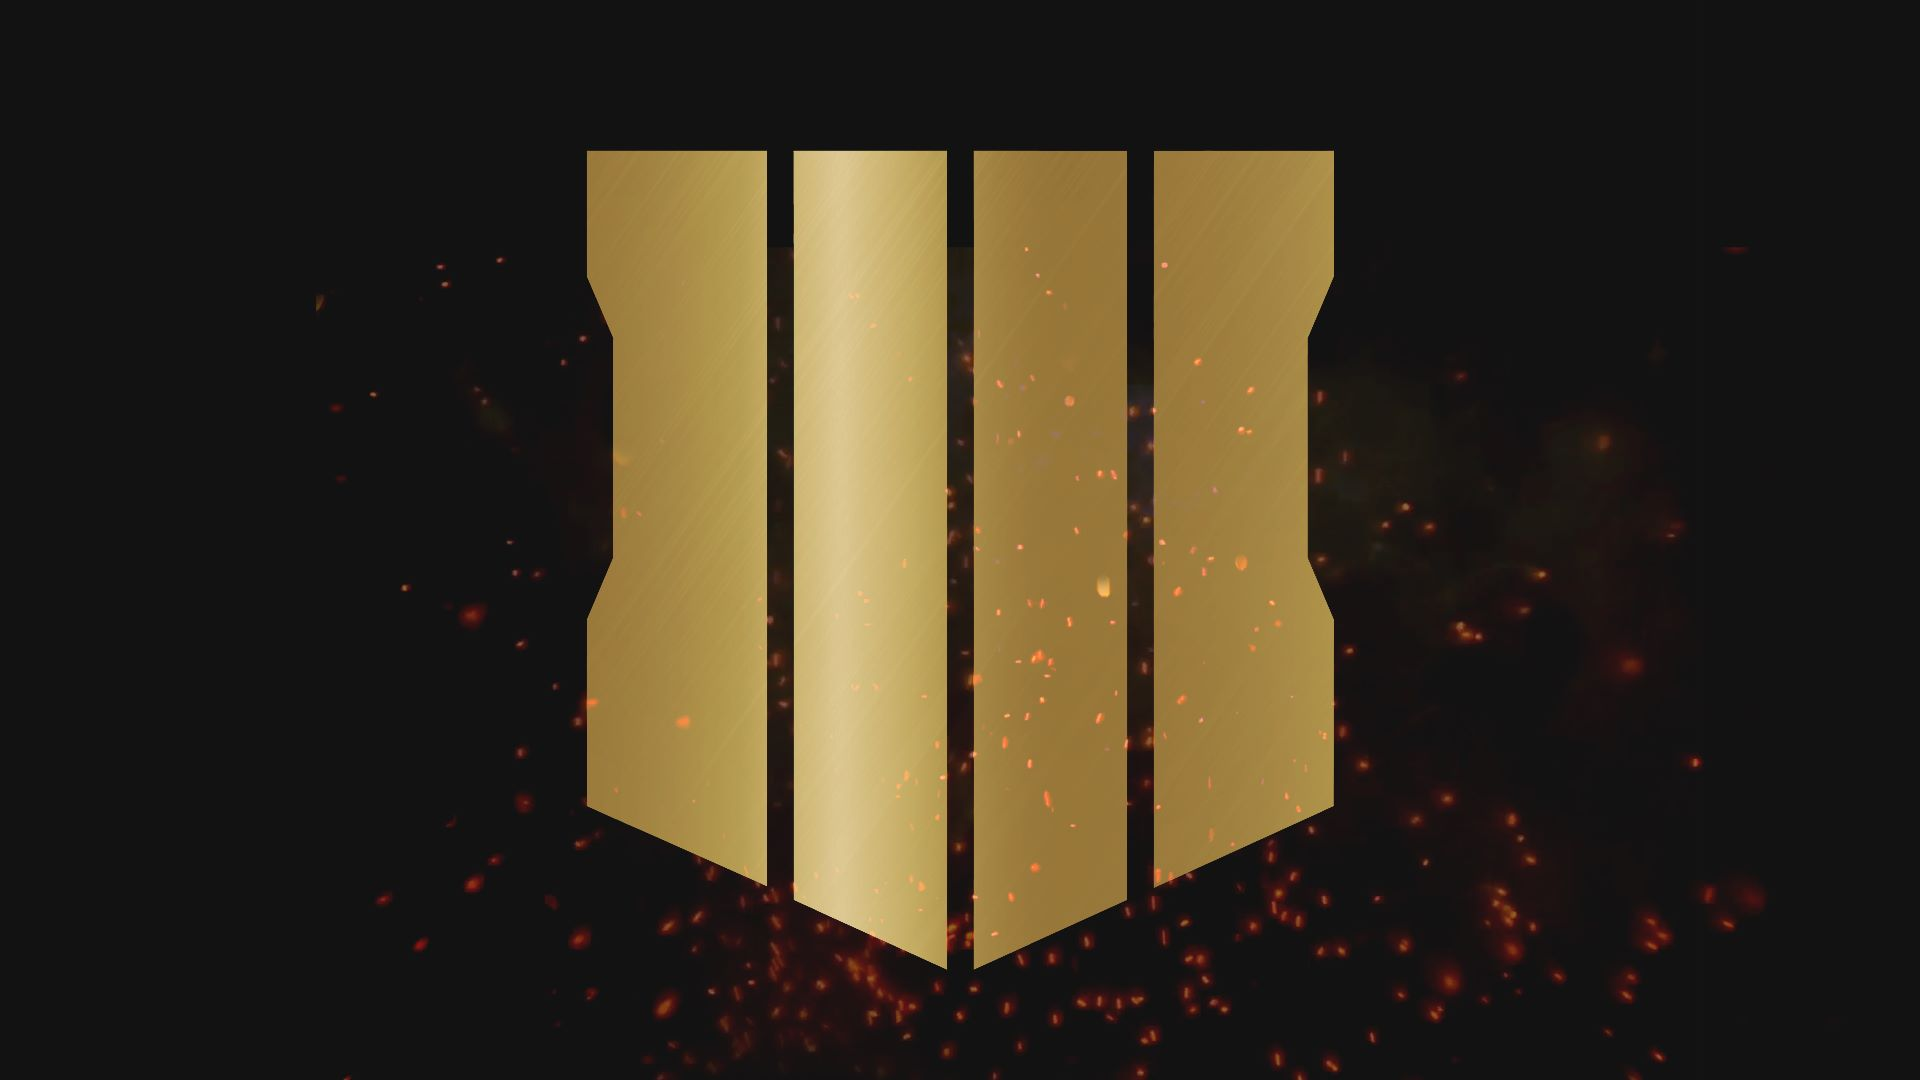 call of duty black ops 4 logo wallpaper 65567